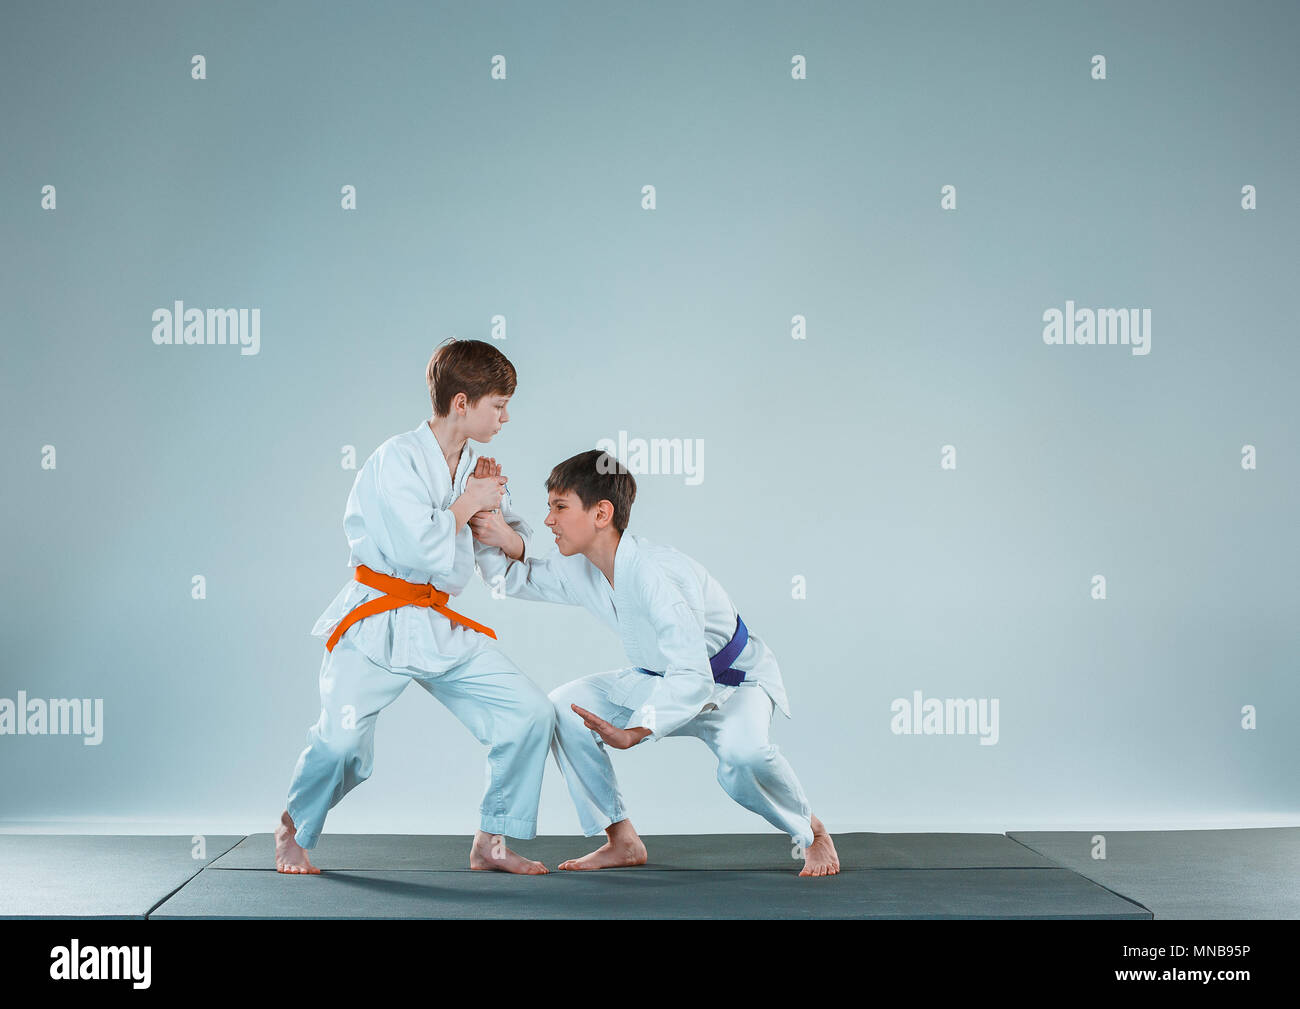 68cab297adb3b The two boys fighting at Aikido training in martial arts school. Healthy  lifestyle and sports concept